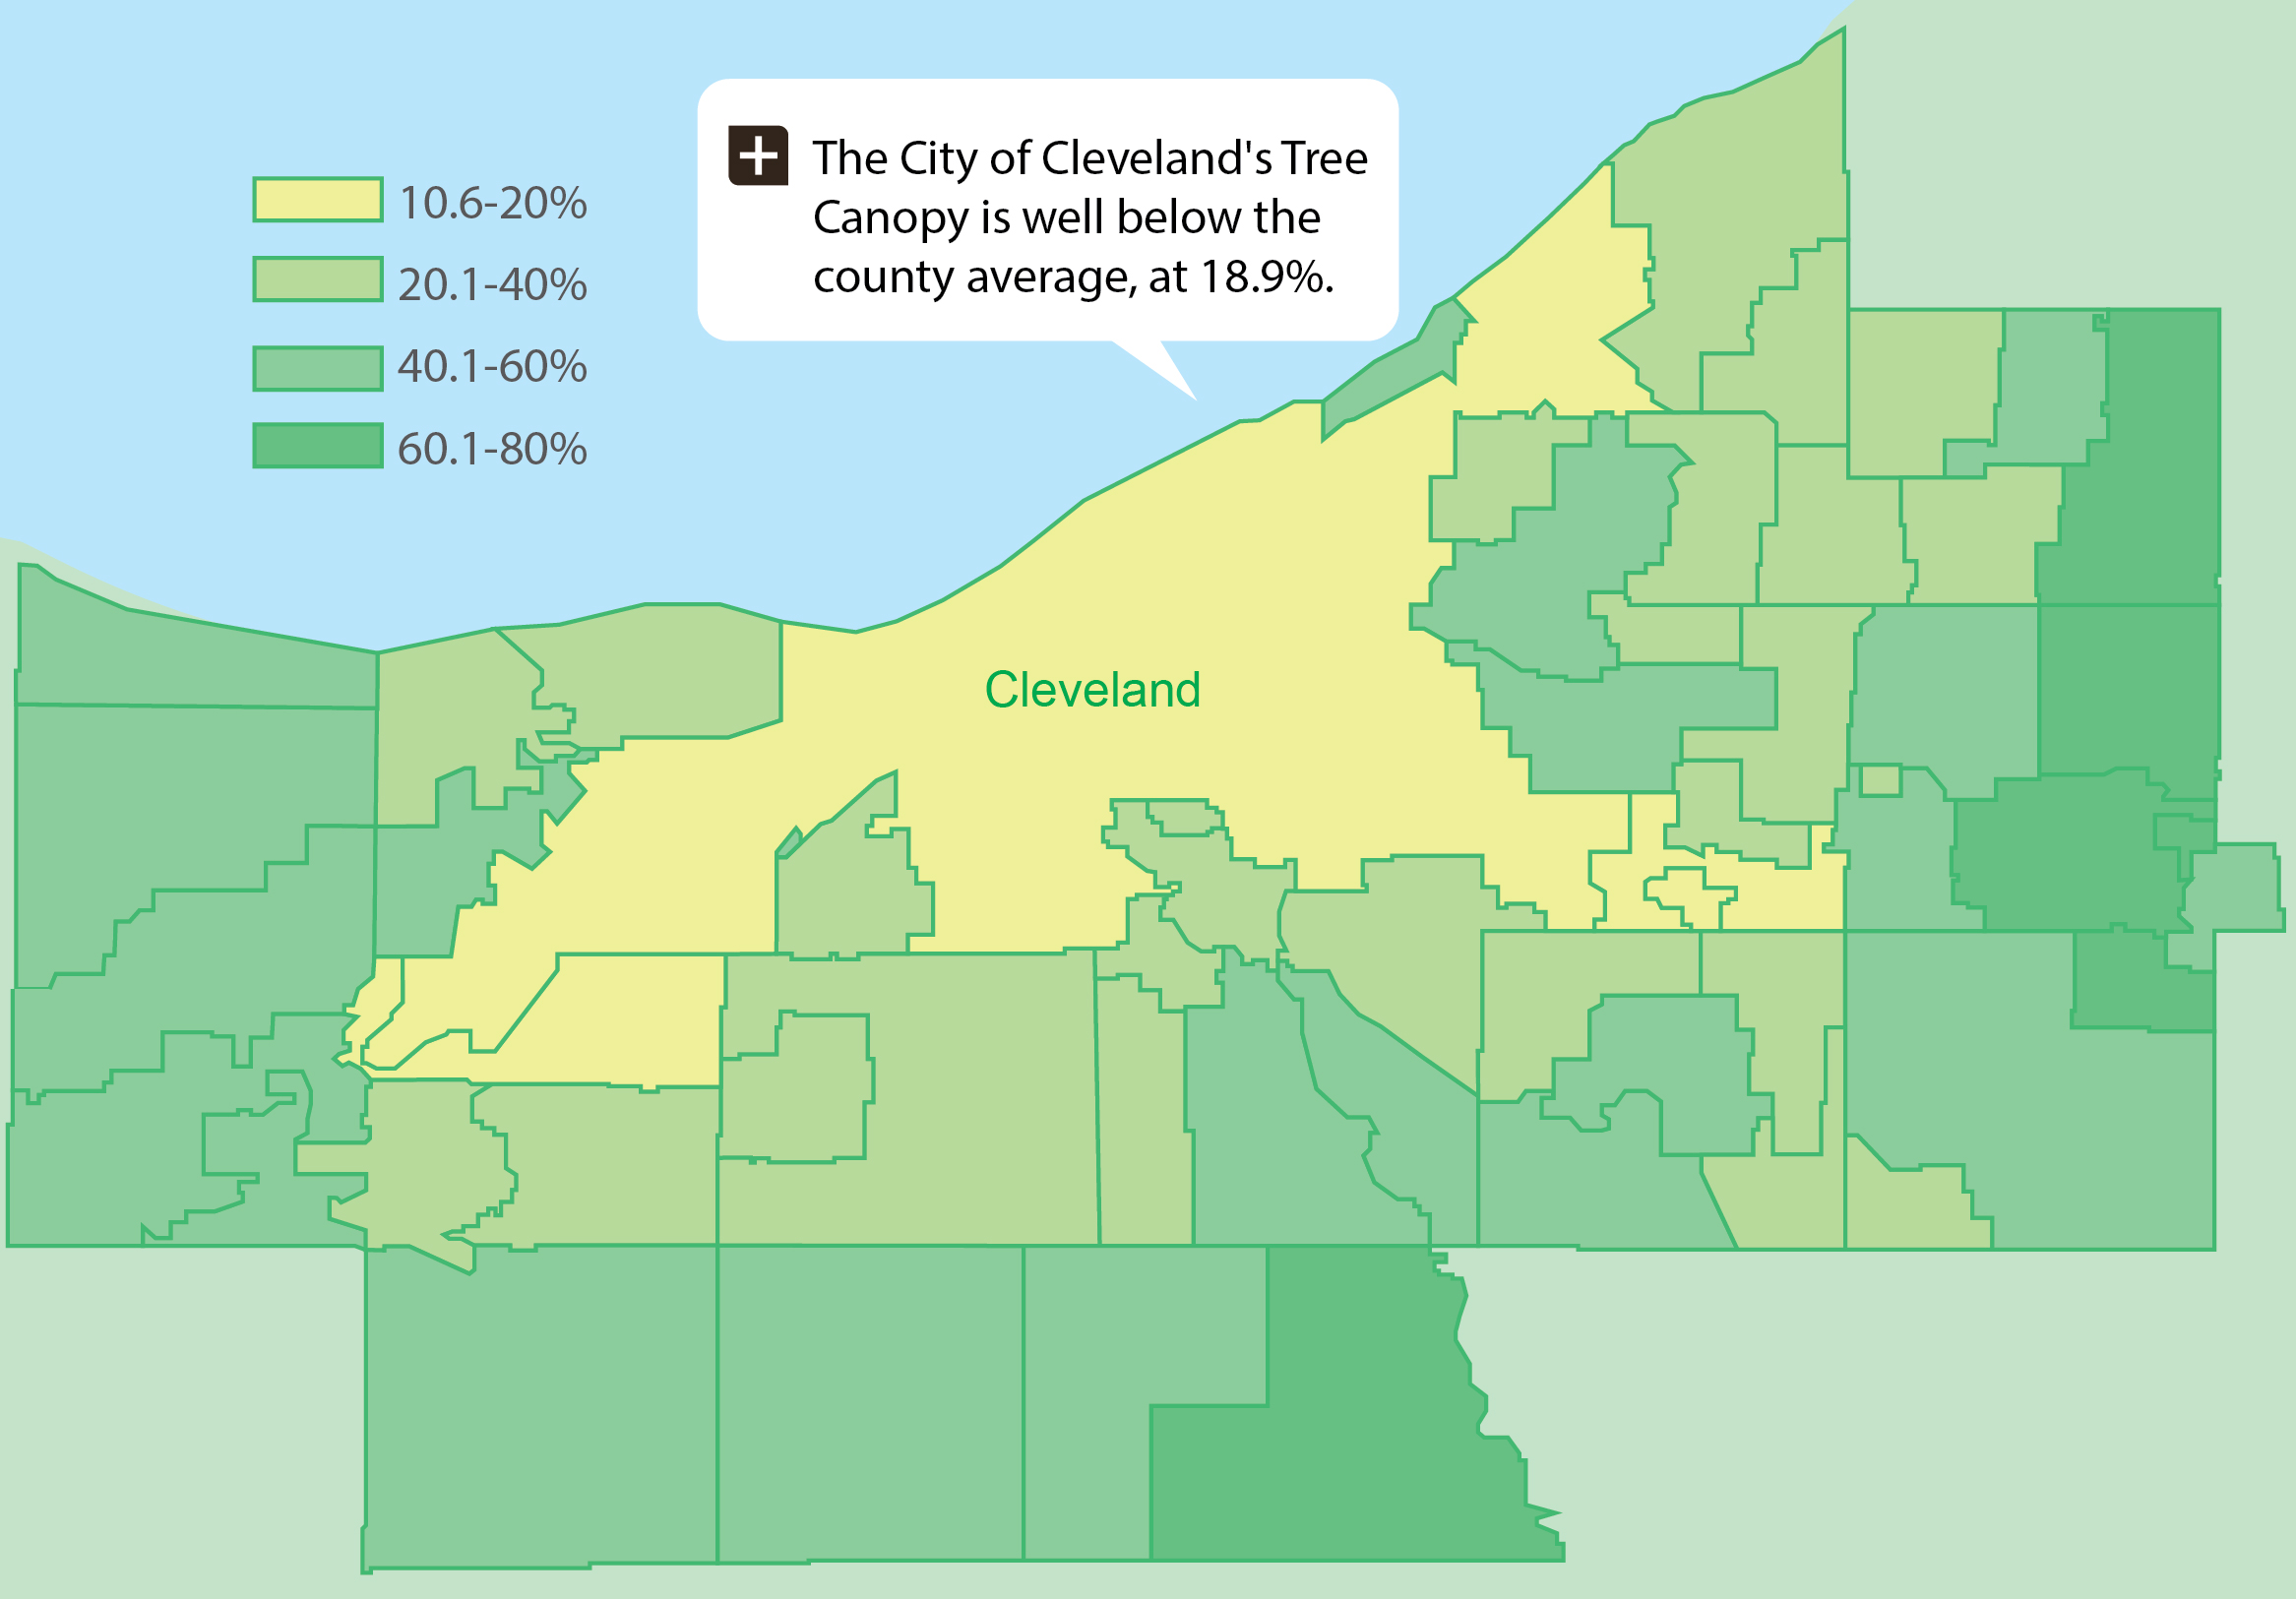 treecanopy_(Cuyahoga_County__with_CoC_callout)_5.26.16.jpg